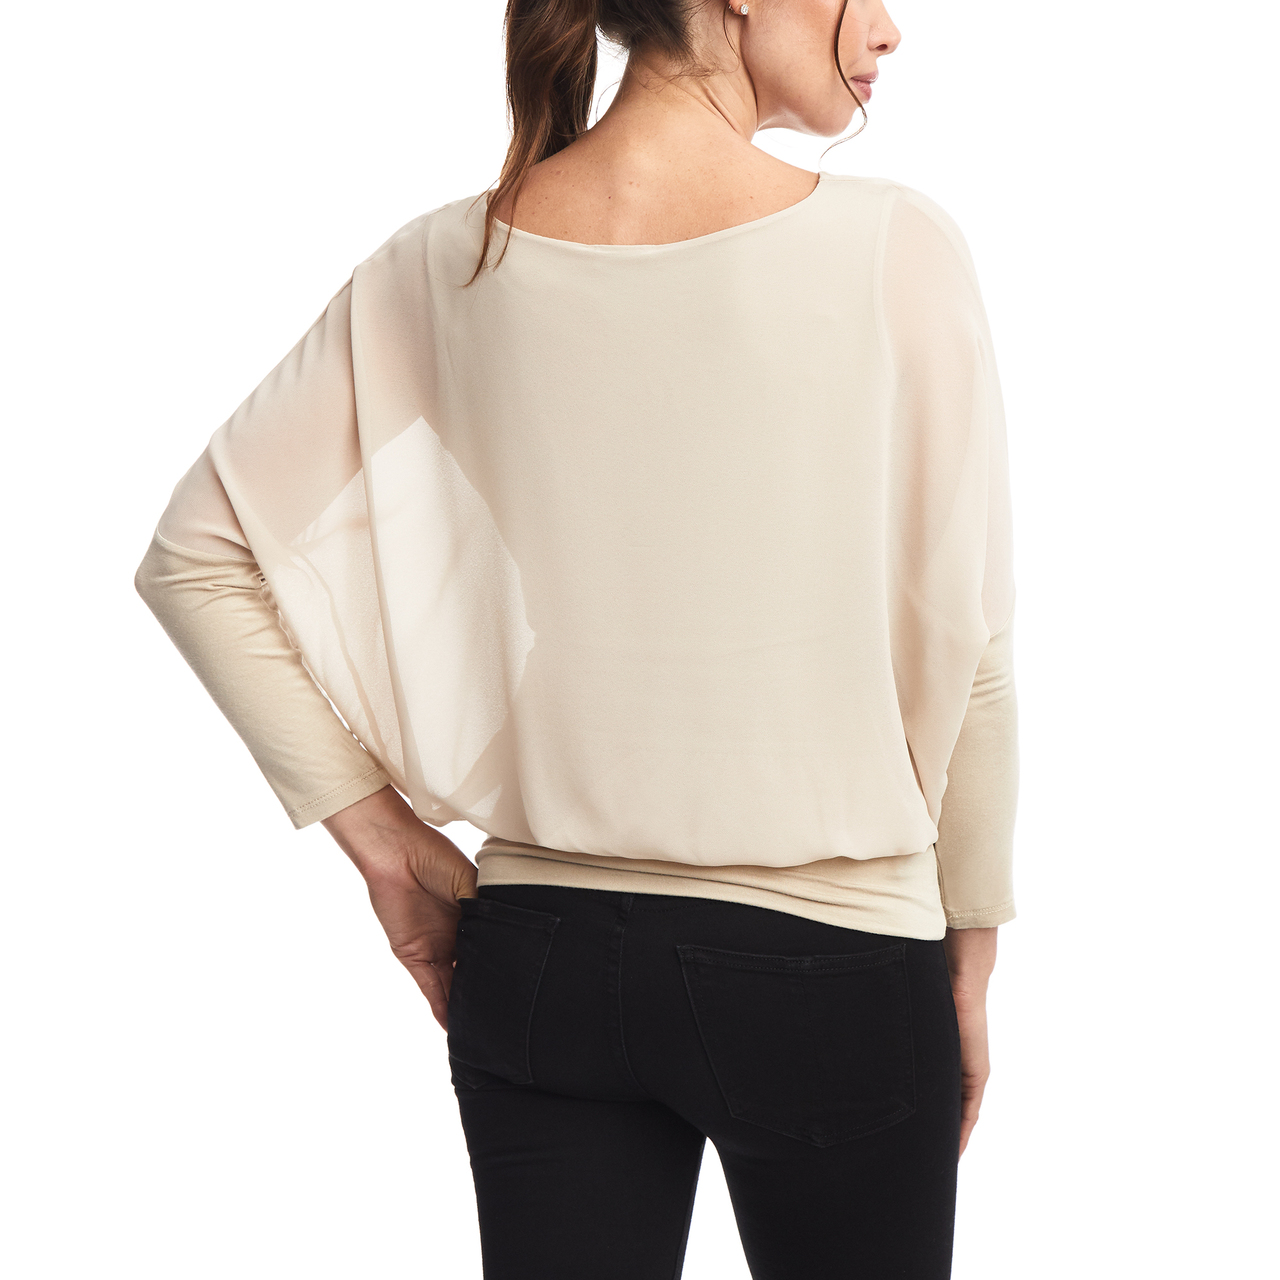 New Khaki Dolman Sleeve Chiffon Top with Banded Knit Bottom